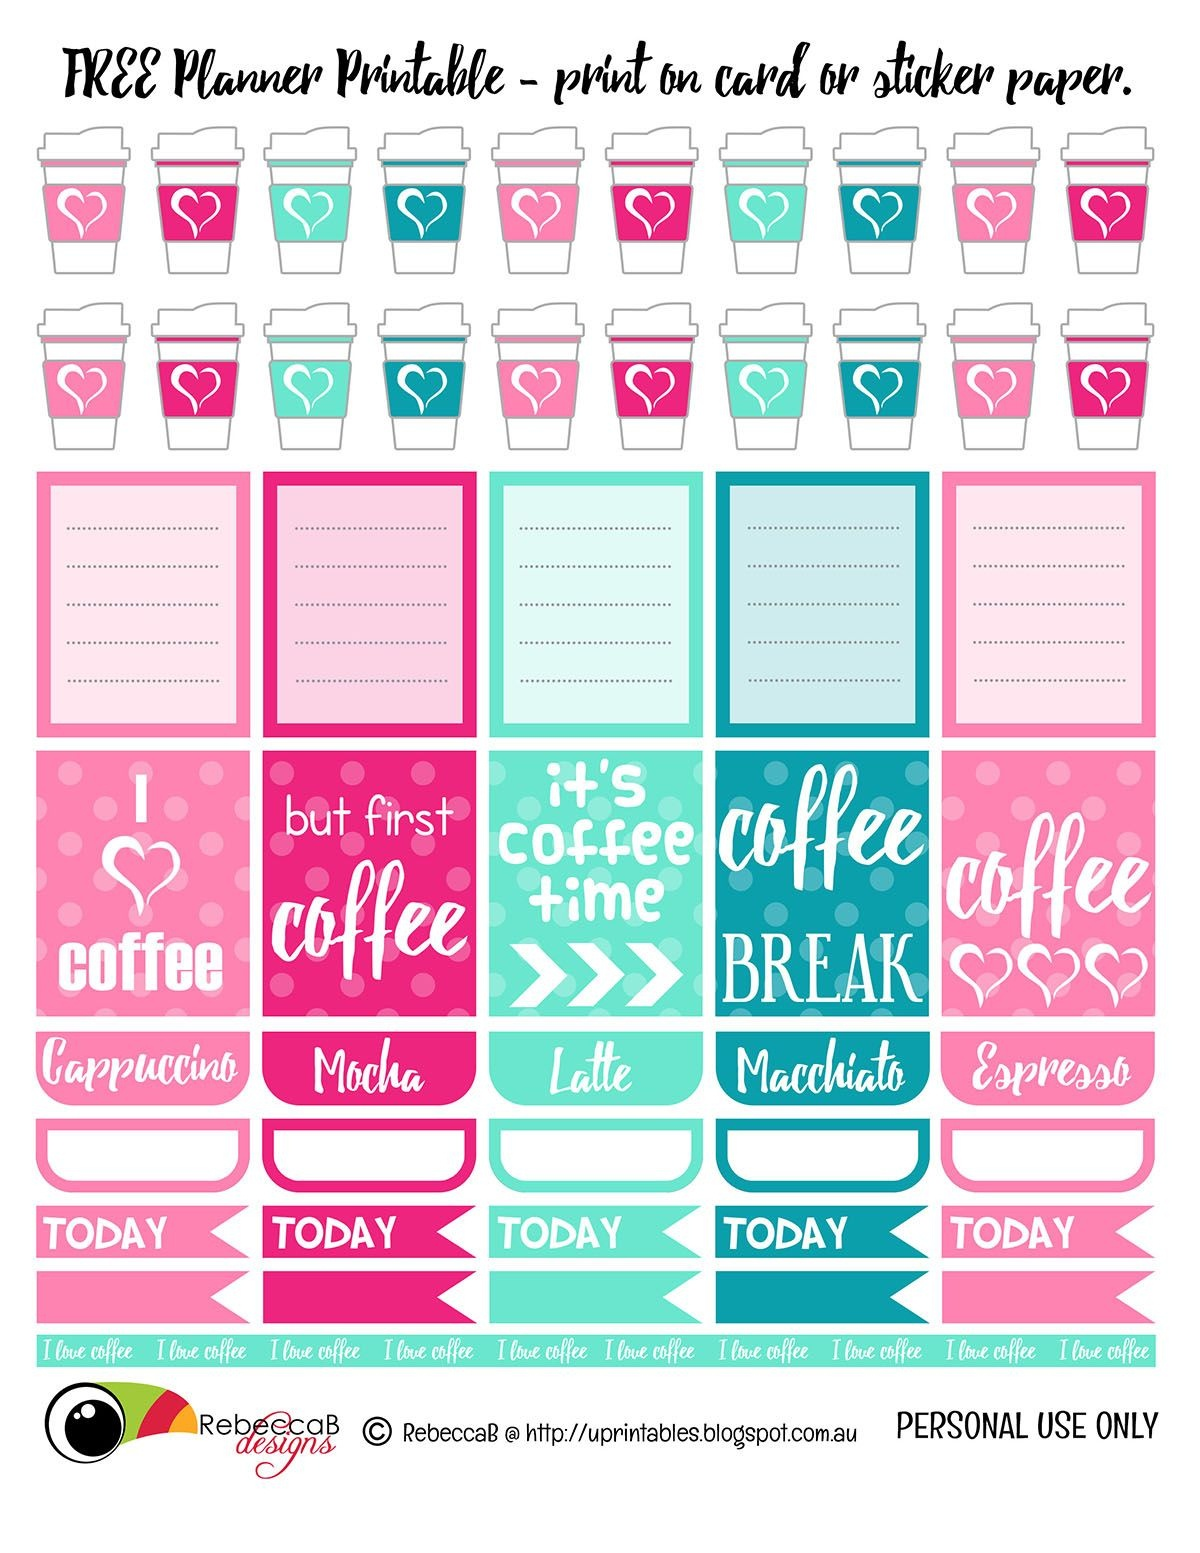 Free Printable Planner Stickers - Coffee. Print These Planner - Free Printable Card Stock Paper